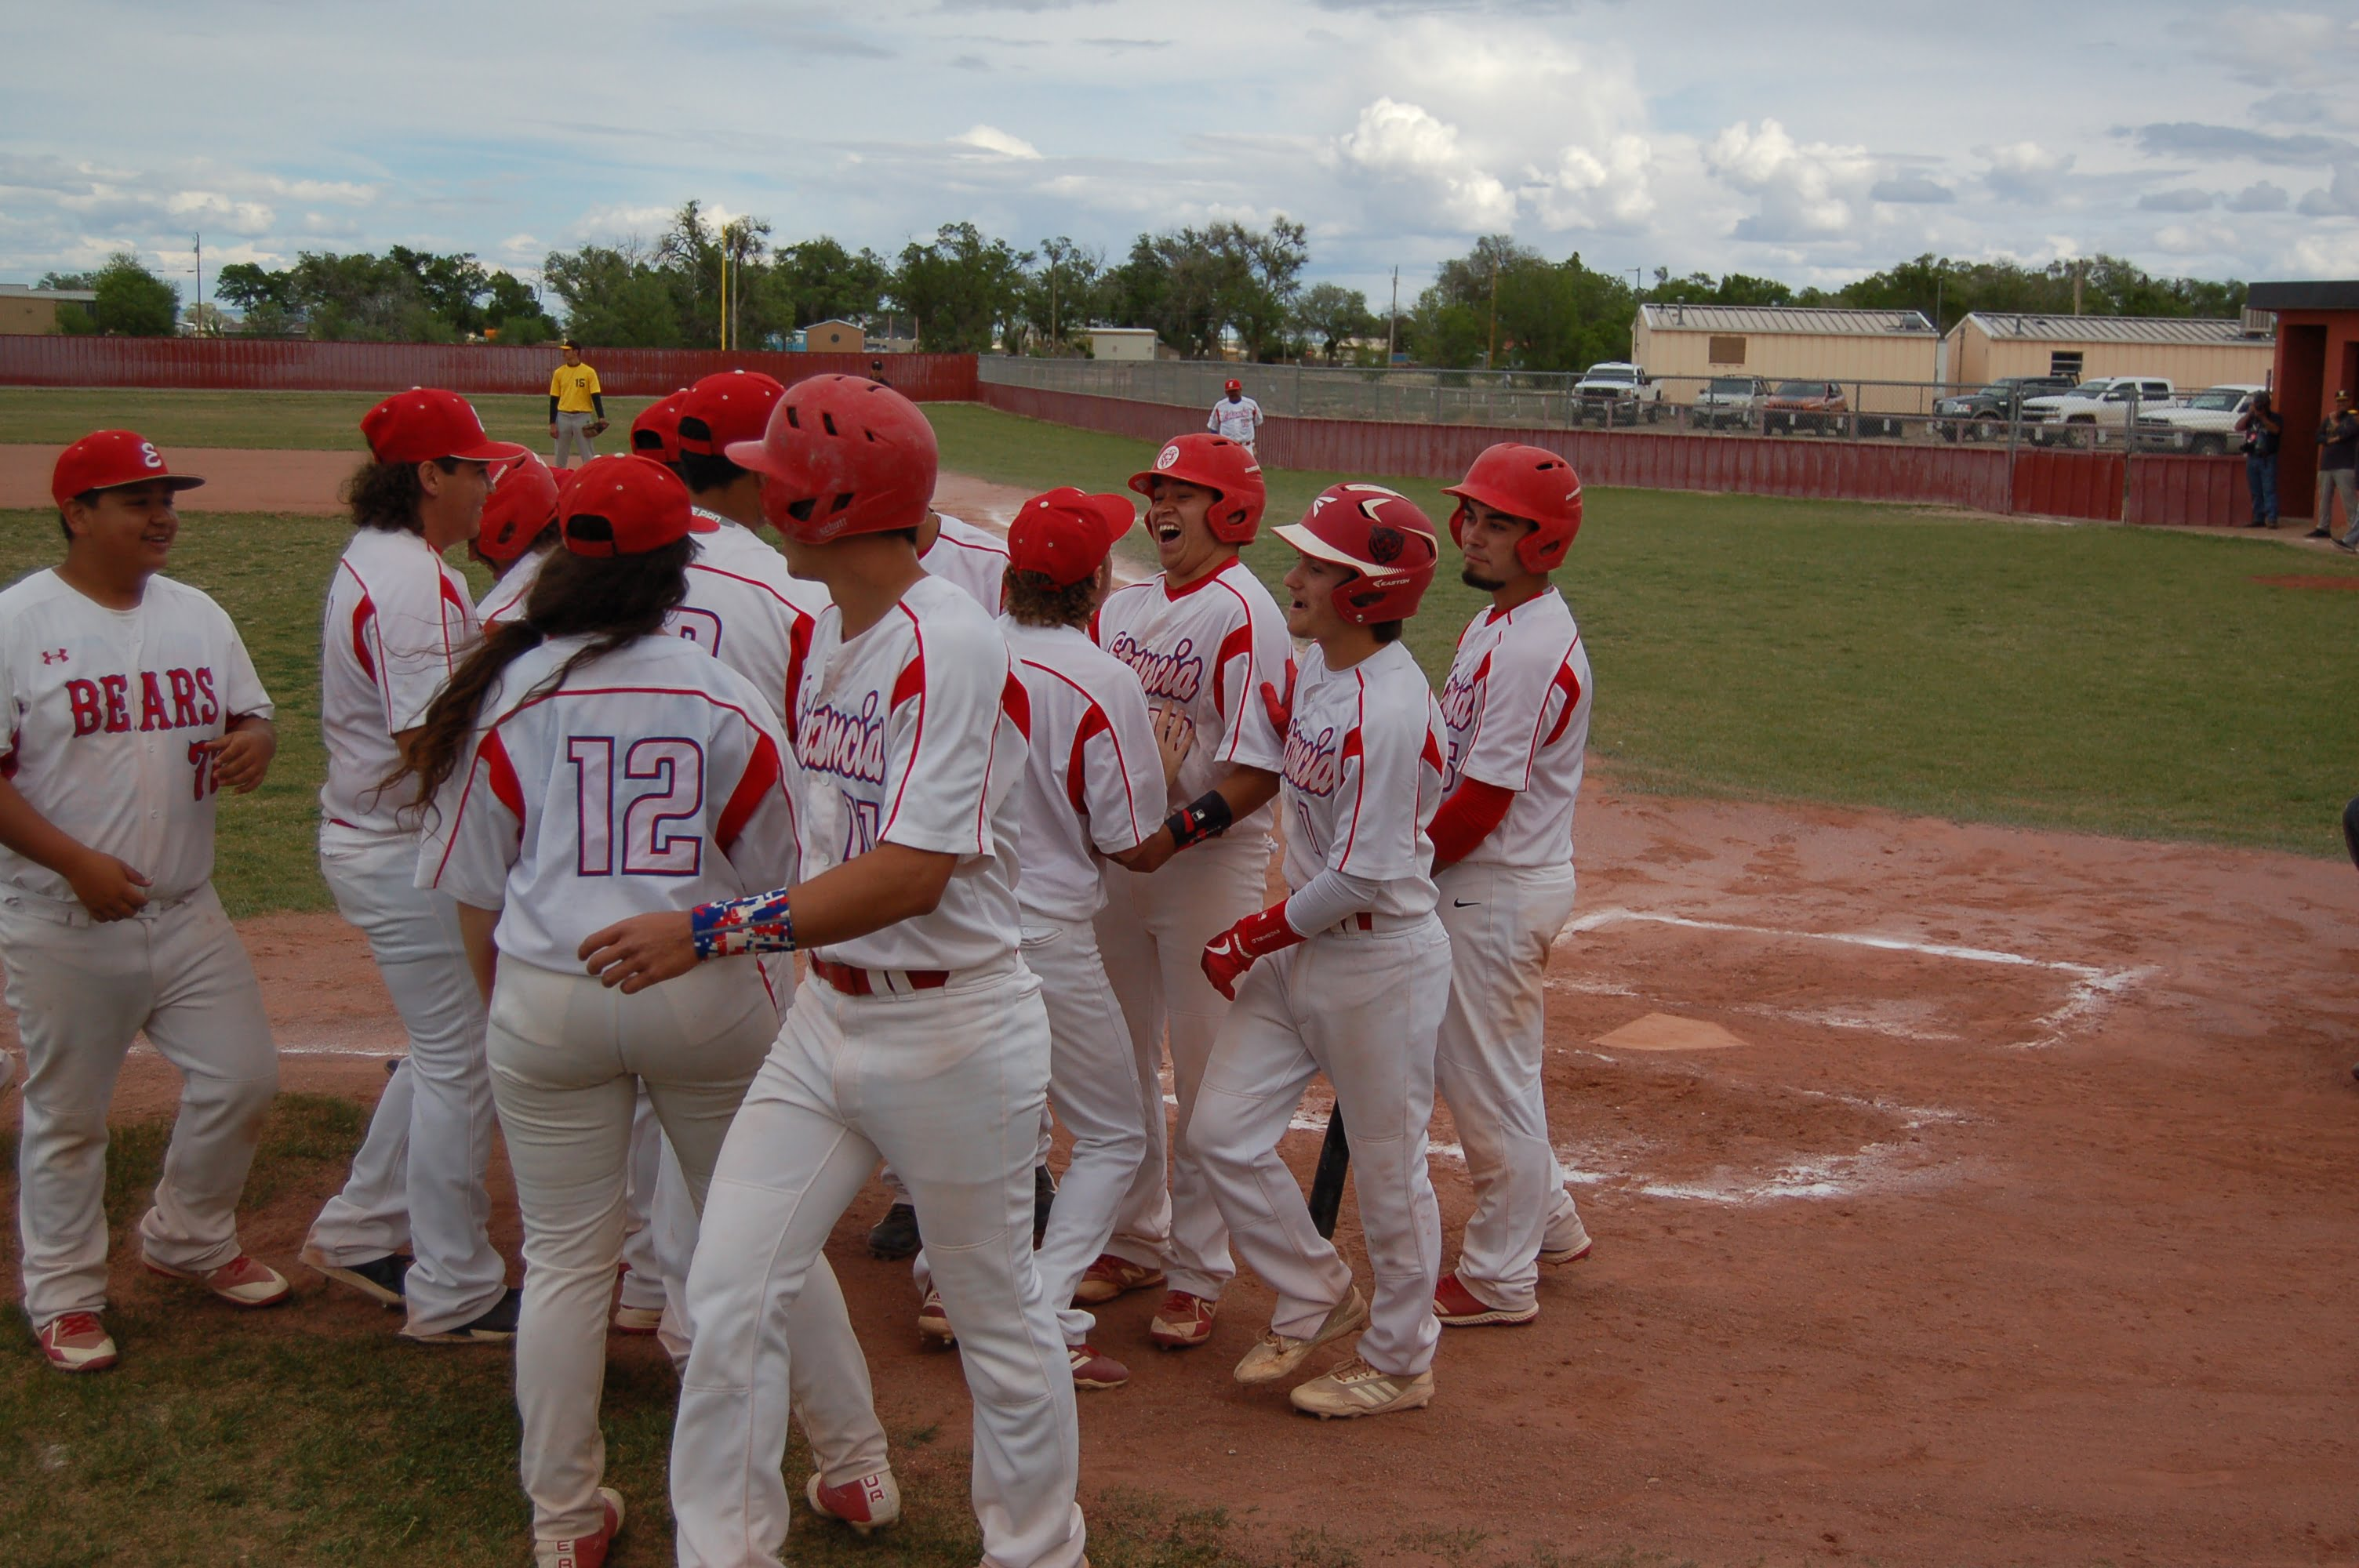 Estancia Bears trounce Tierra Encantada in first round of 2A state baseball tournament